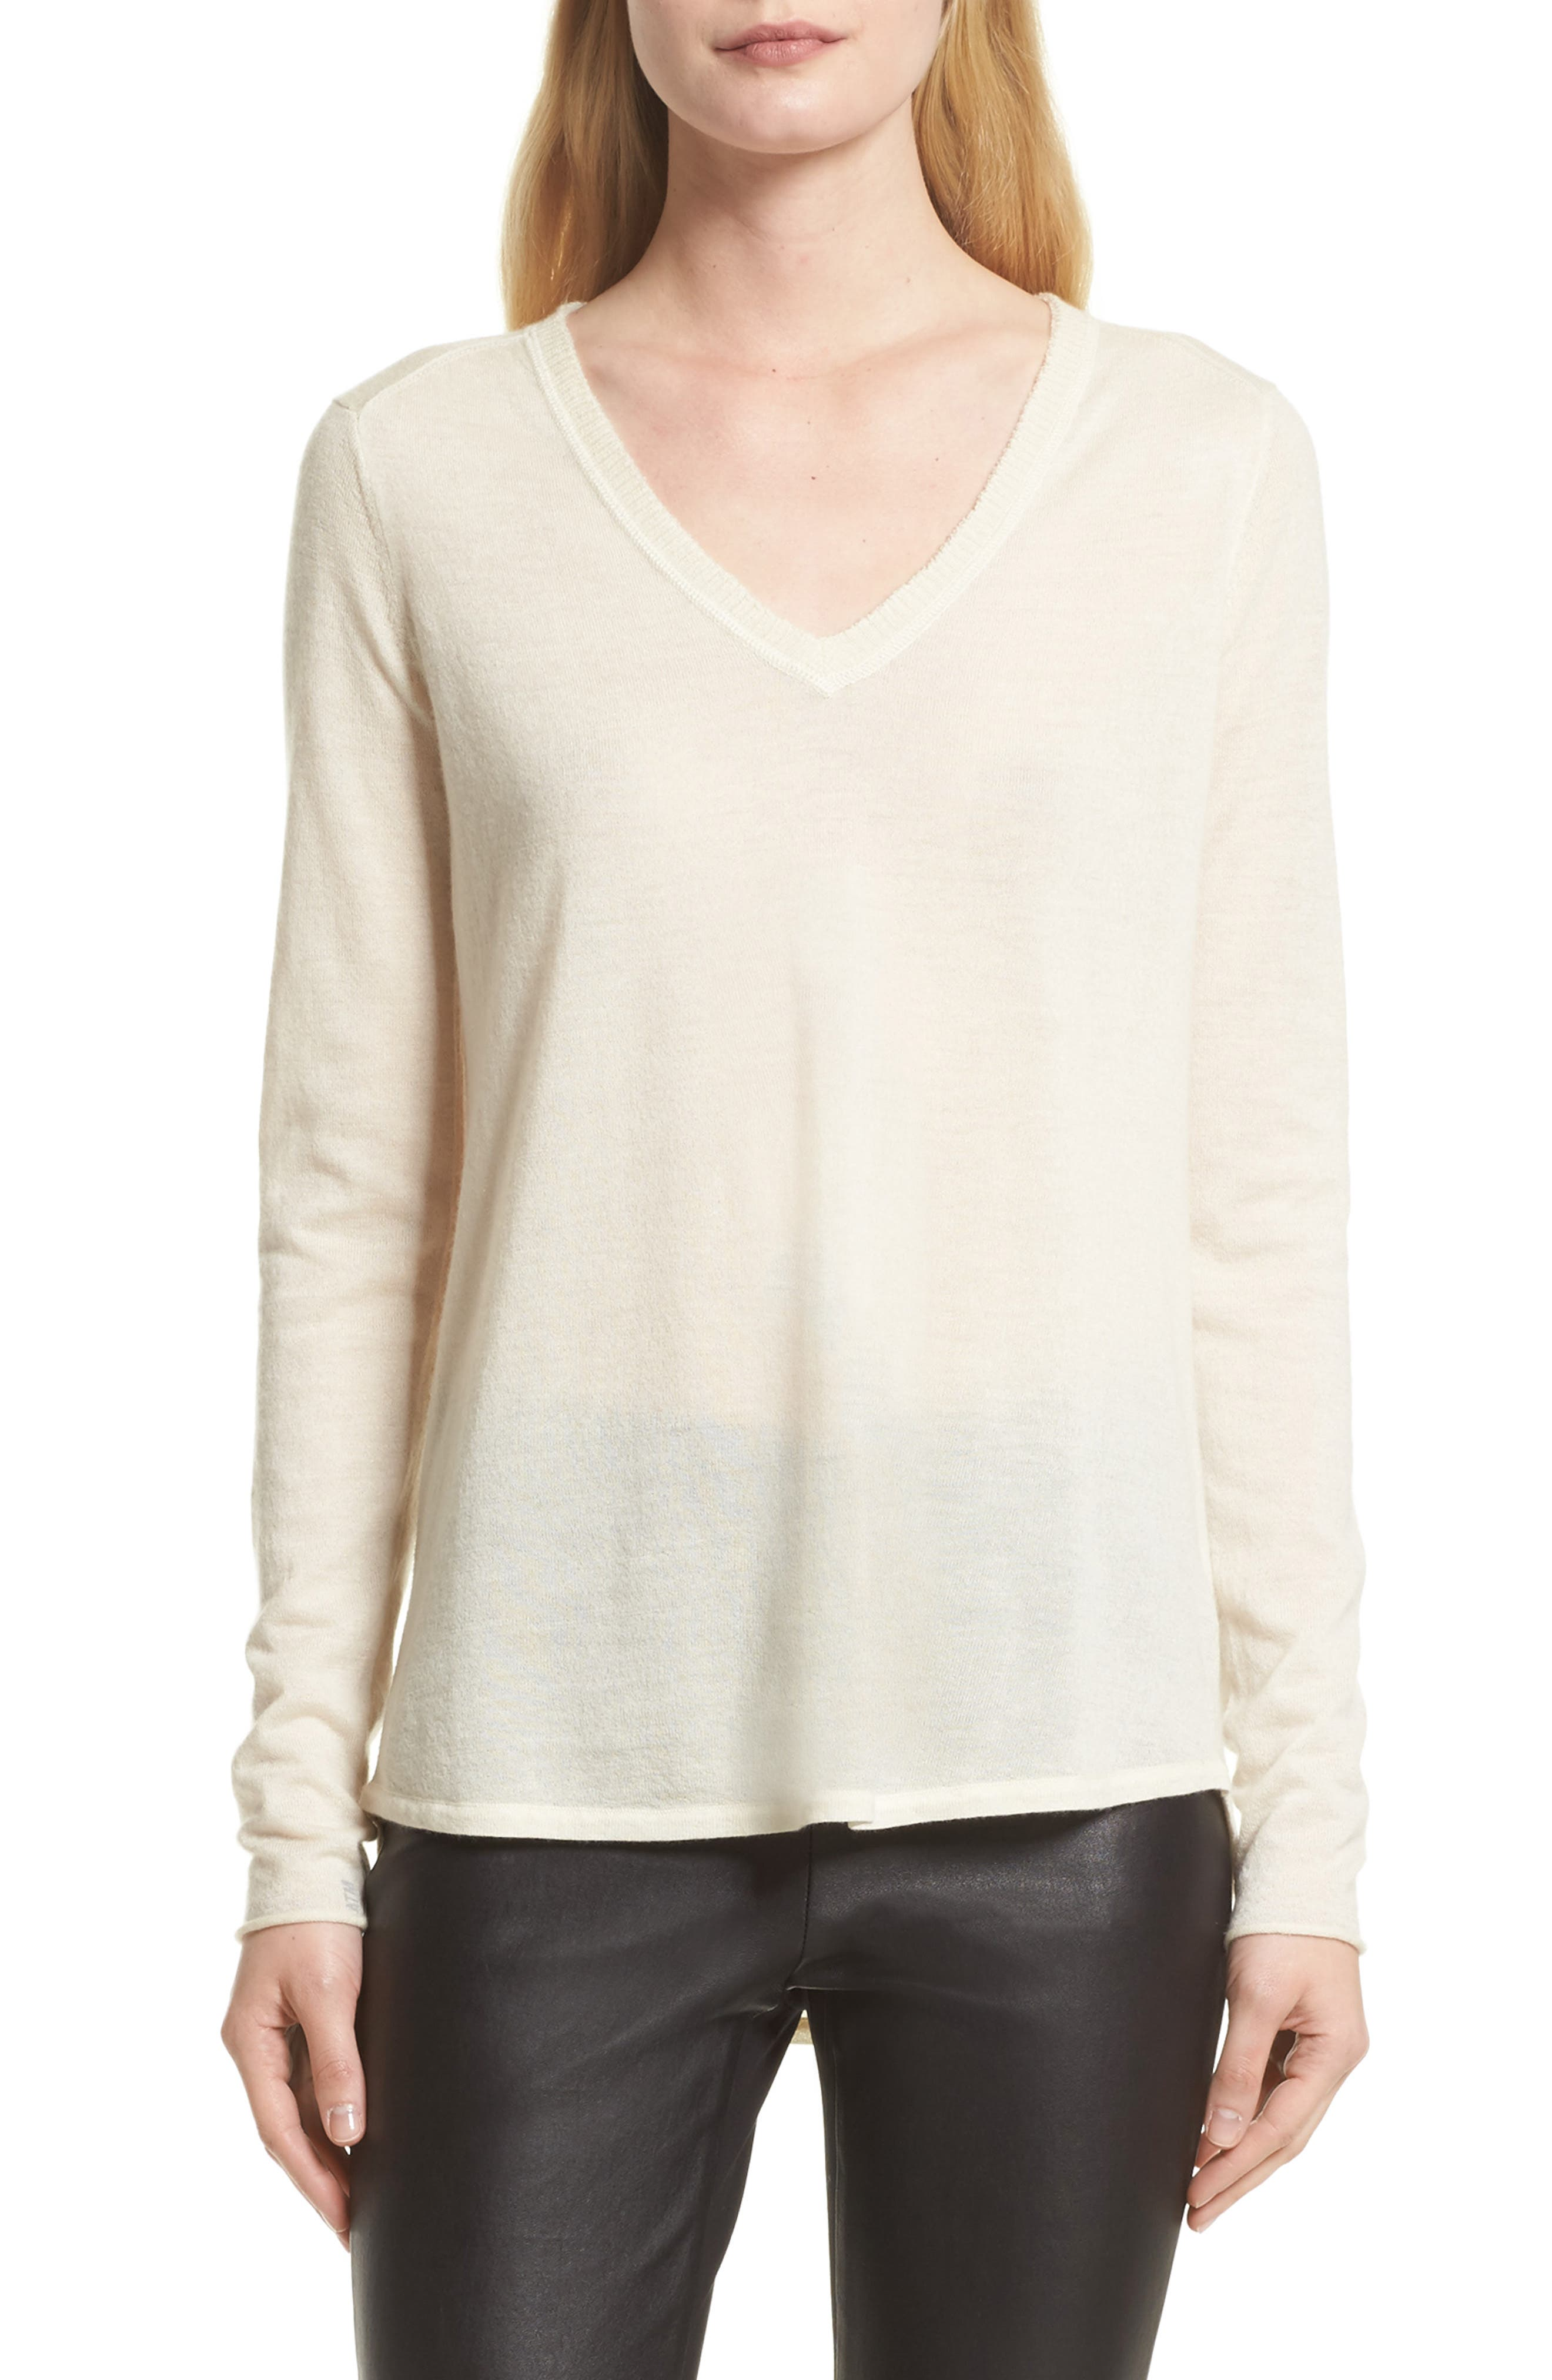 Main Image - ATM Anthony Thomas Melillo Raw Edge Cashmere Sweater (Nordstrom Exclusive)